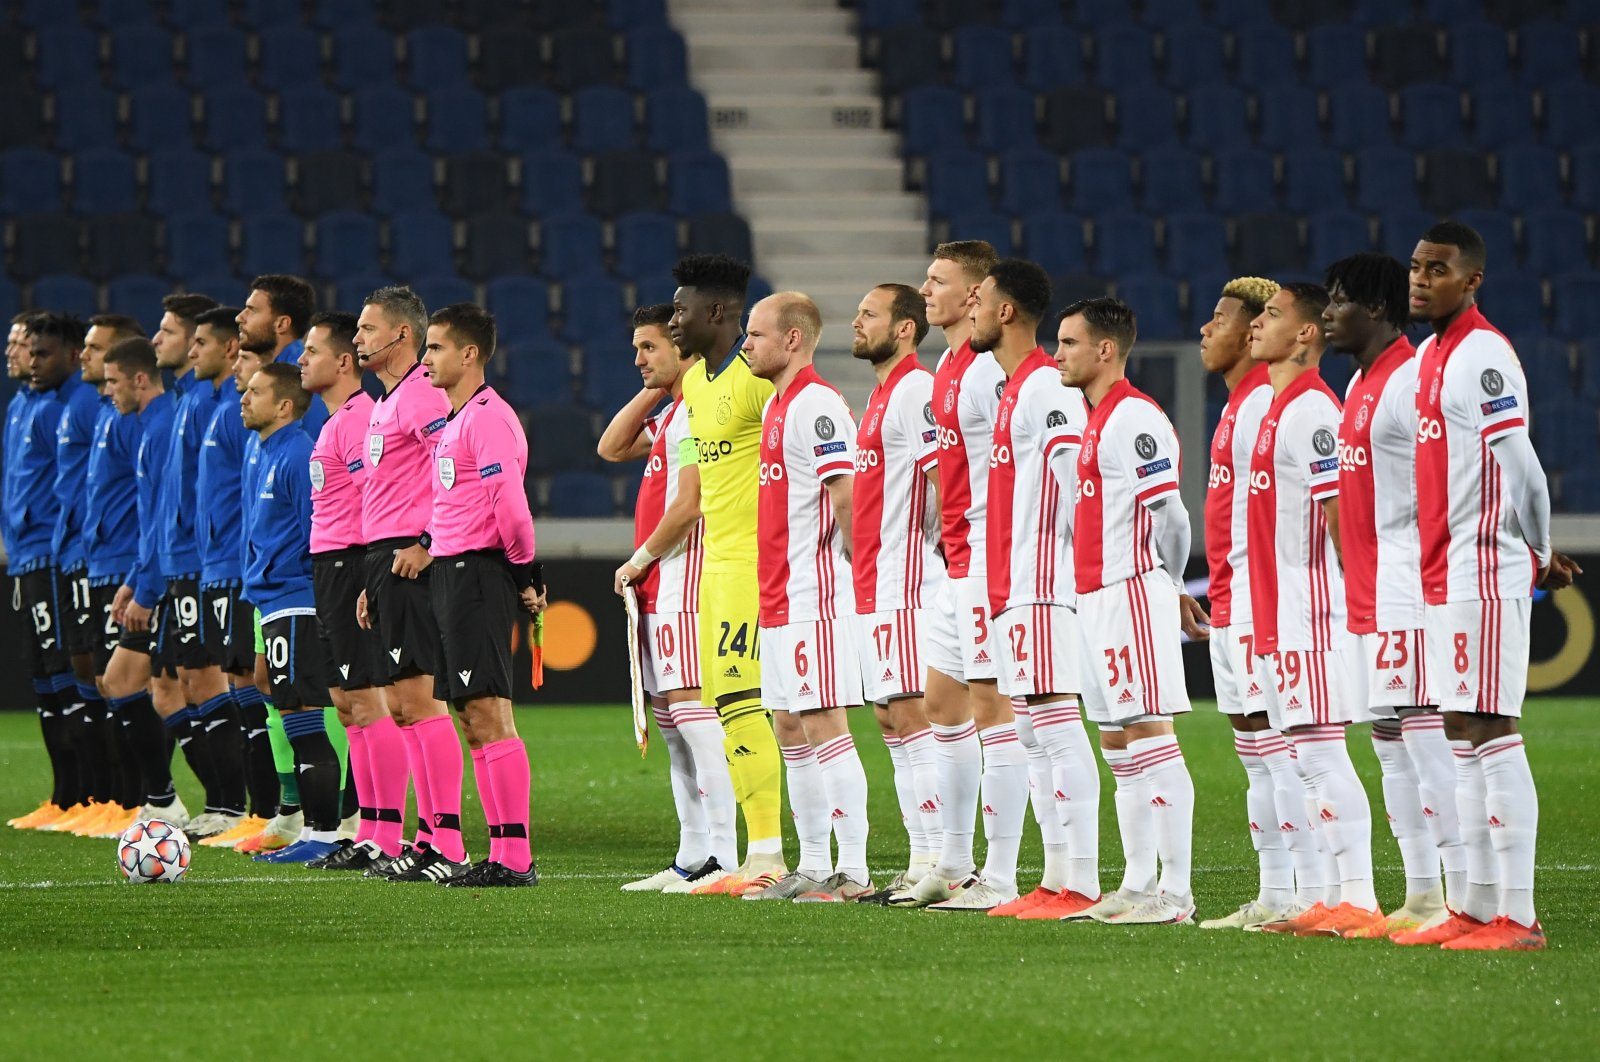 Match officials, Atalanta and Ajax players line up before a Champions League match at Stadio Atleti Azzurri, in Bergamo, Italy, Oct. 27, 2020. (Reuters Photos)